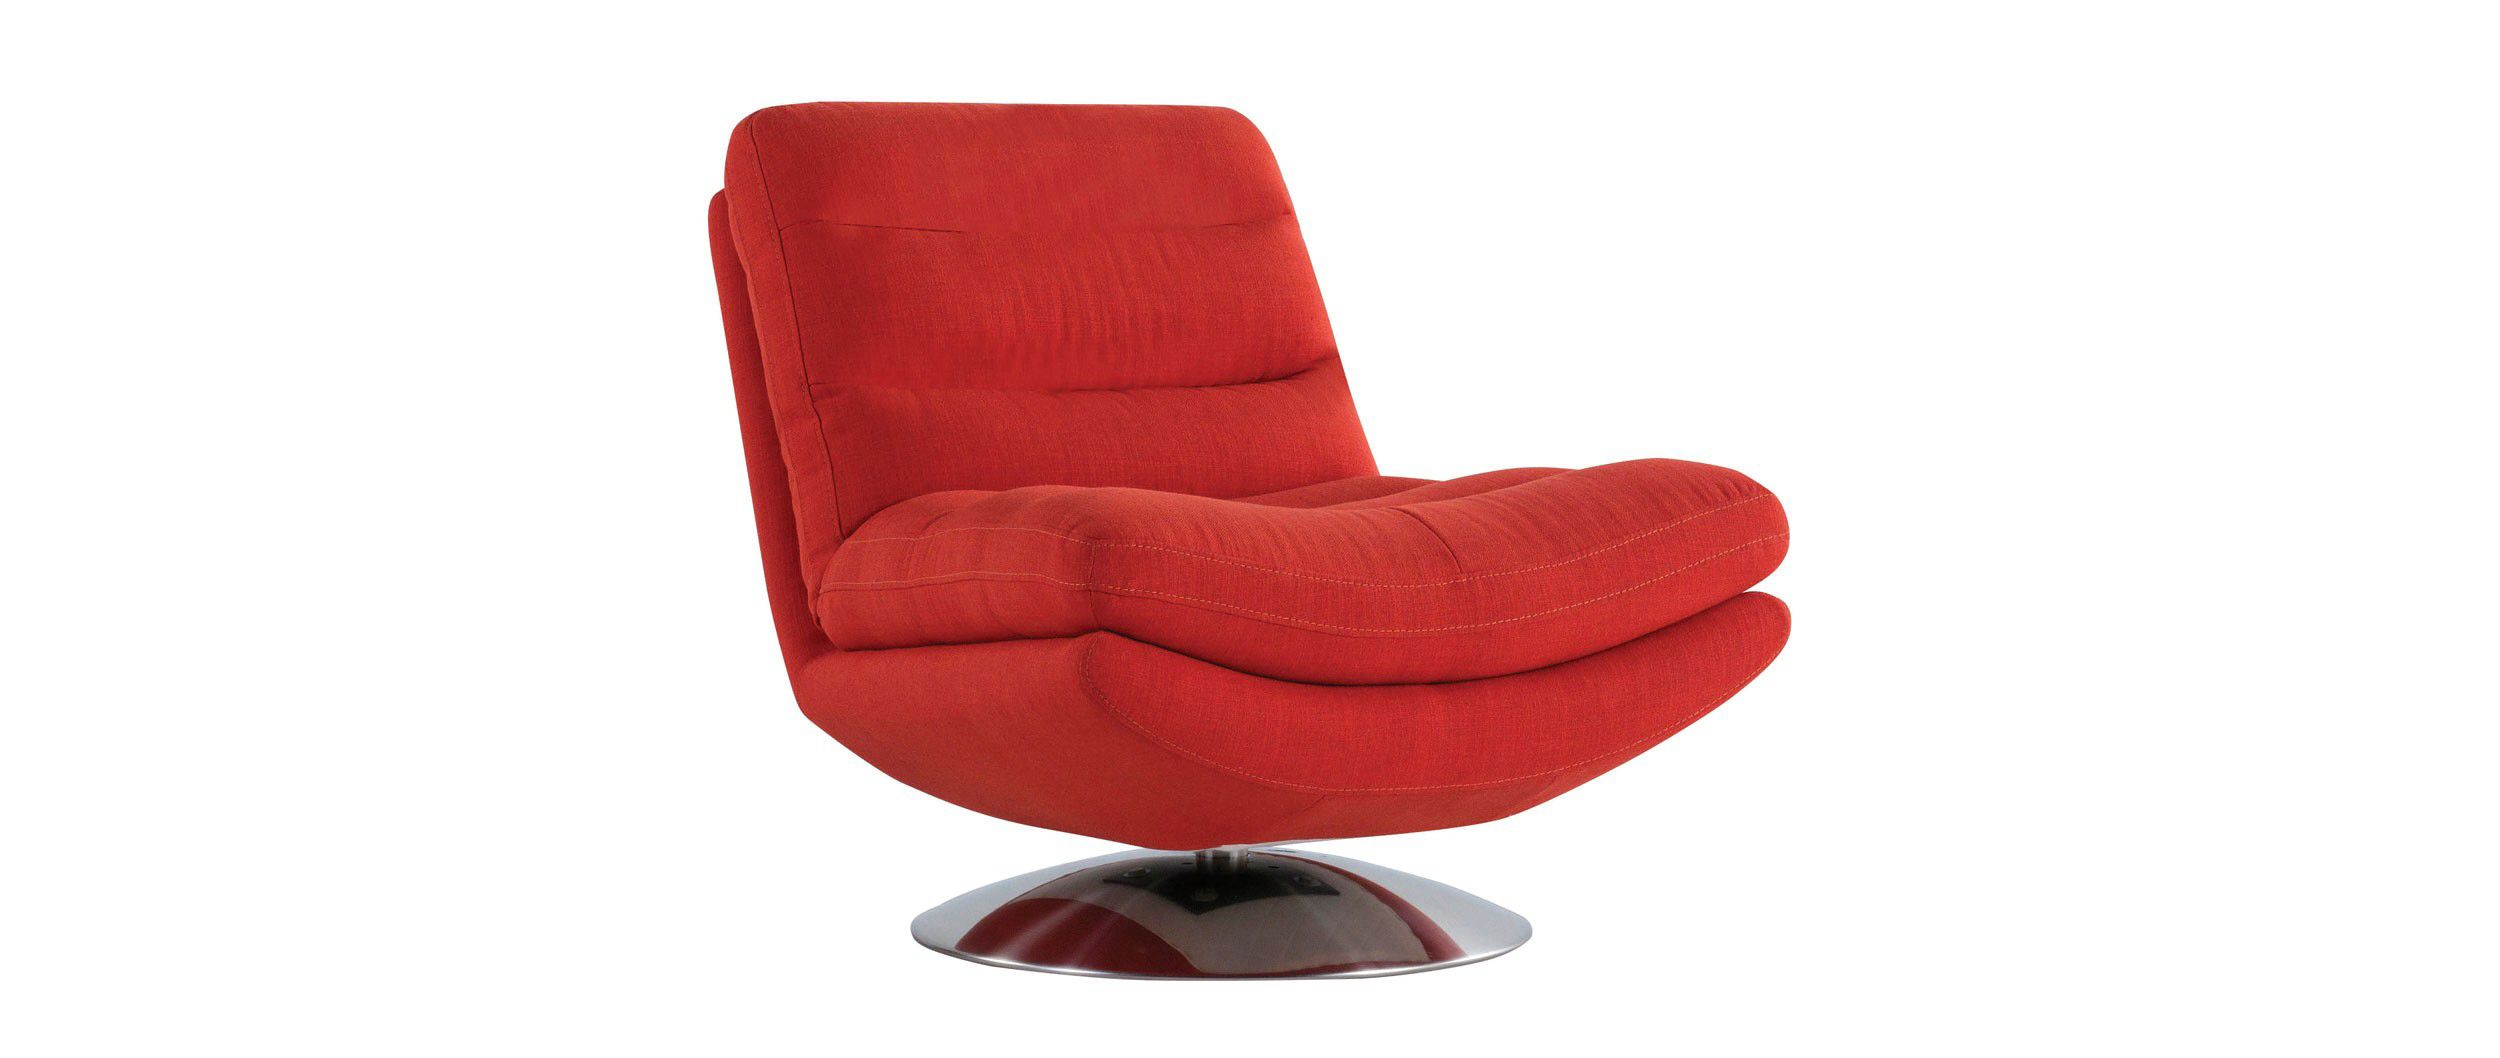 Fauteuil pivotant Cuir Center orange